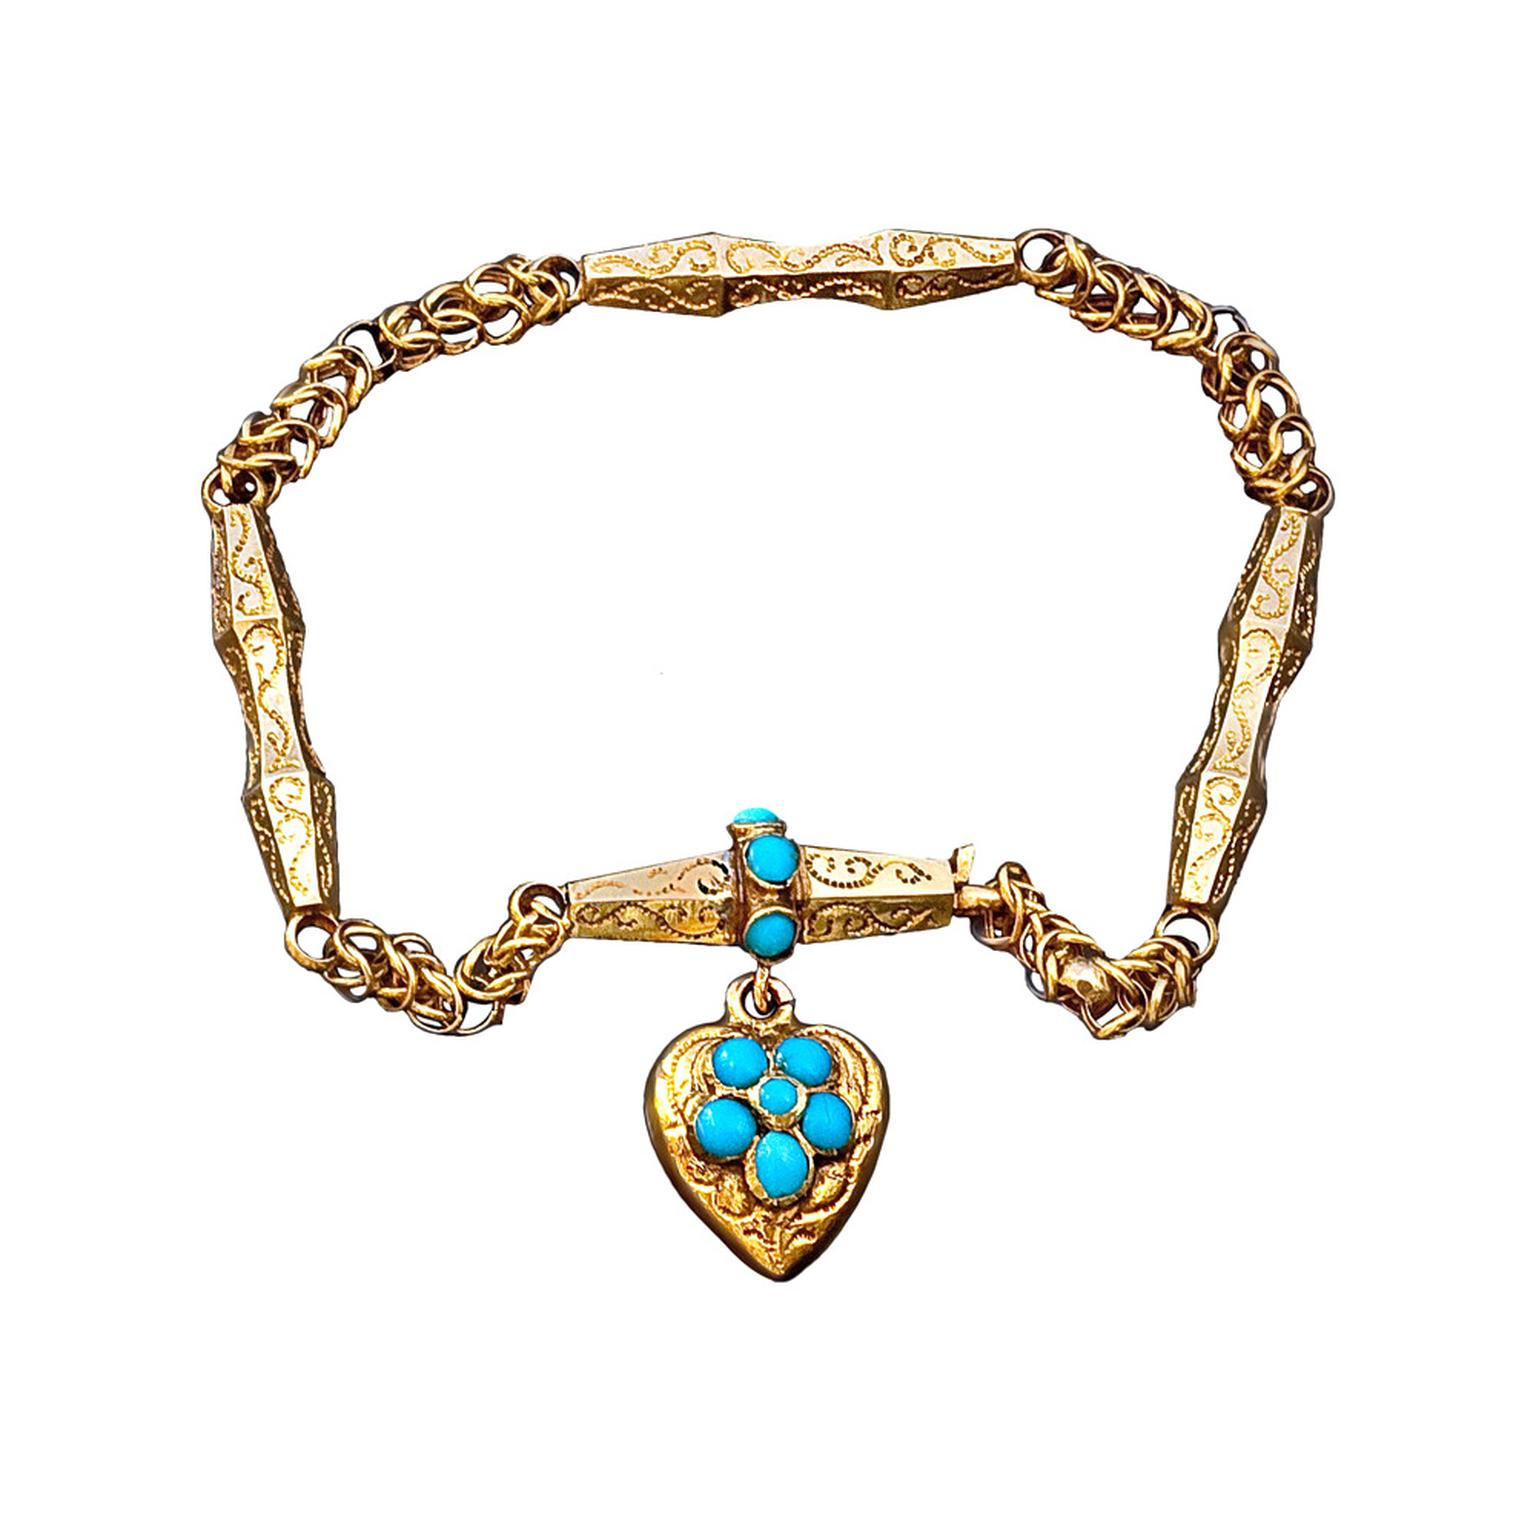 locket a bracelet to turn watch into wikihow step broken ways